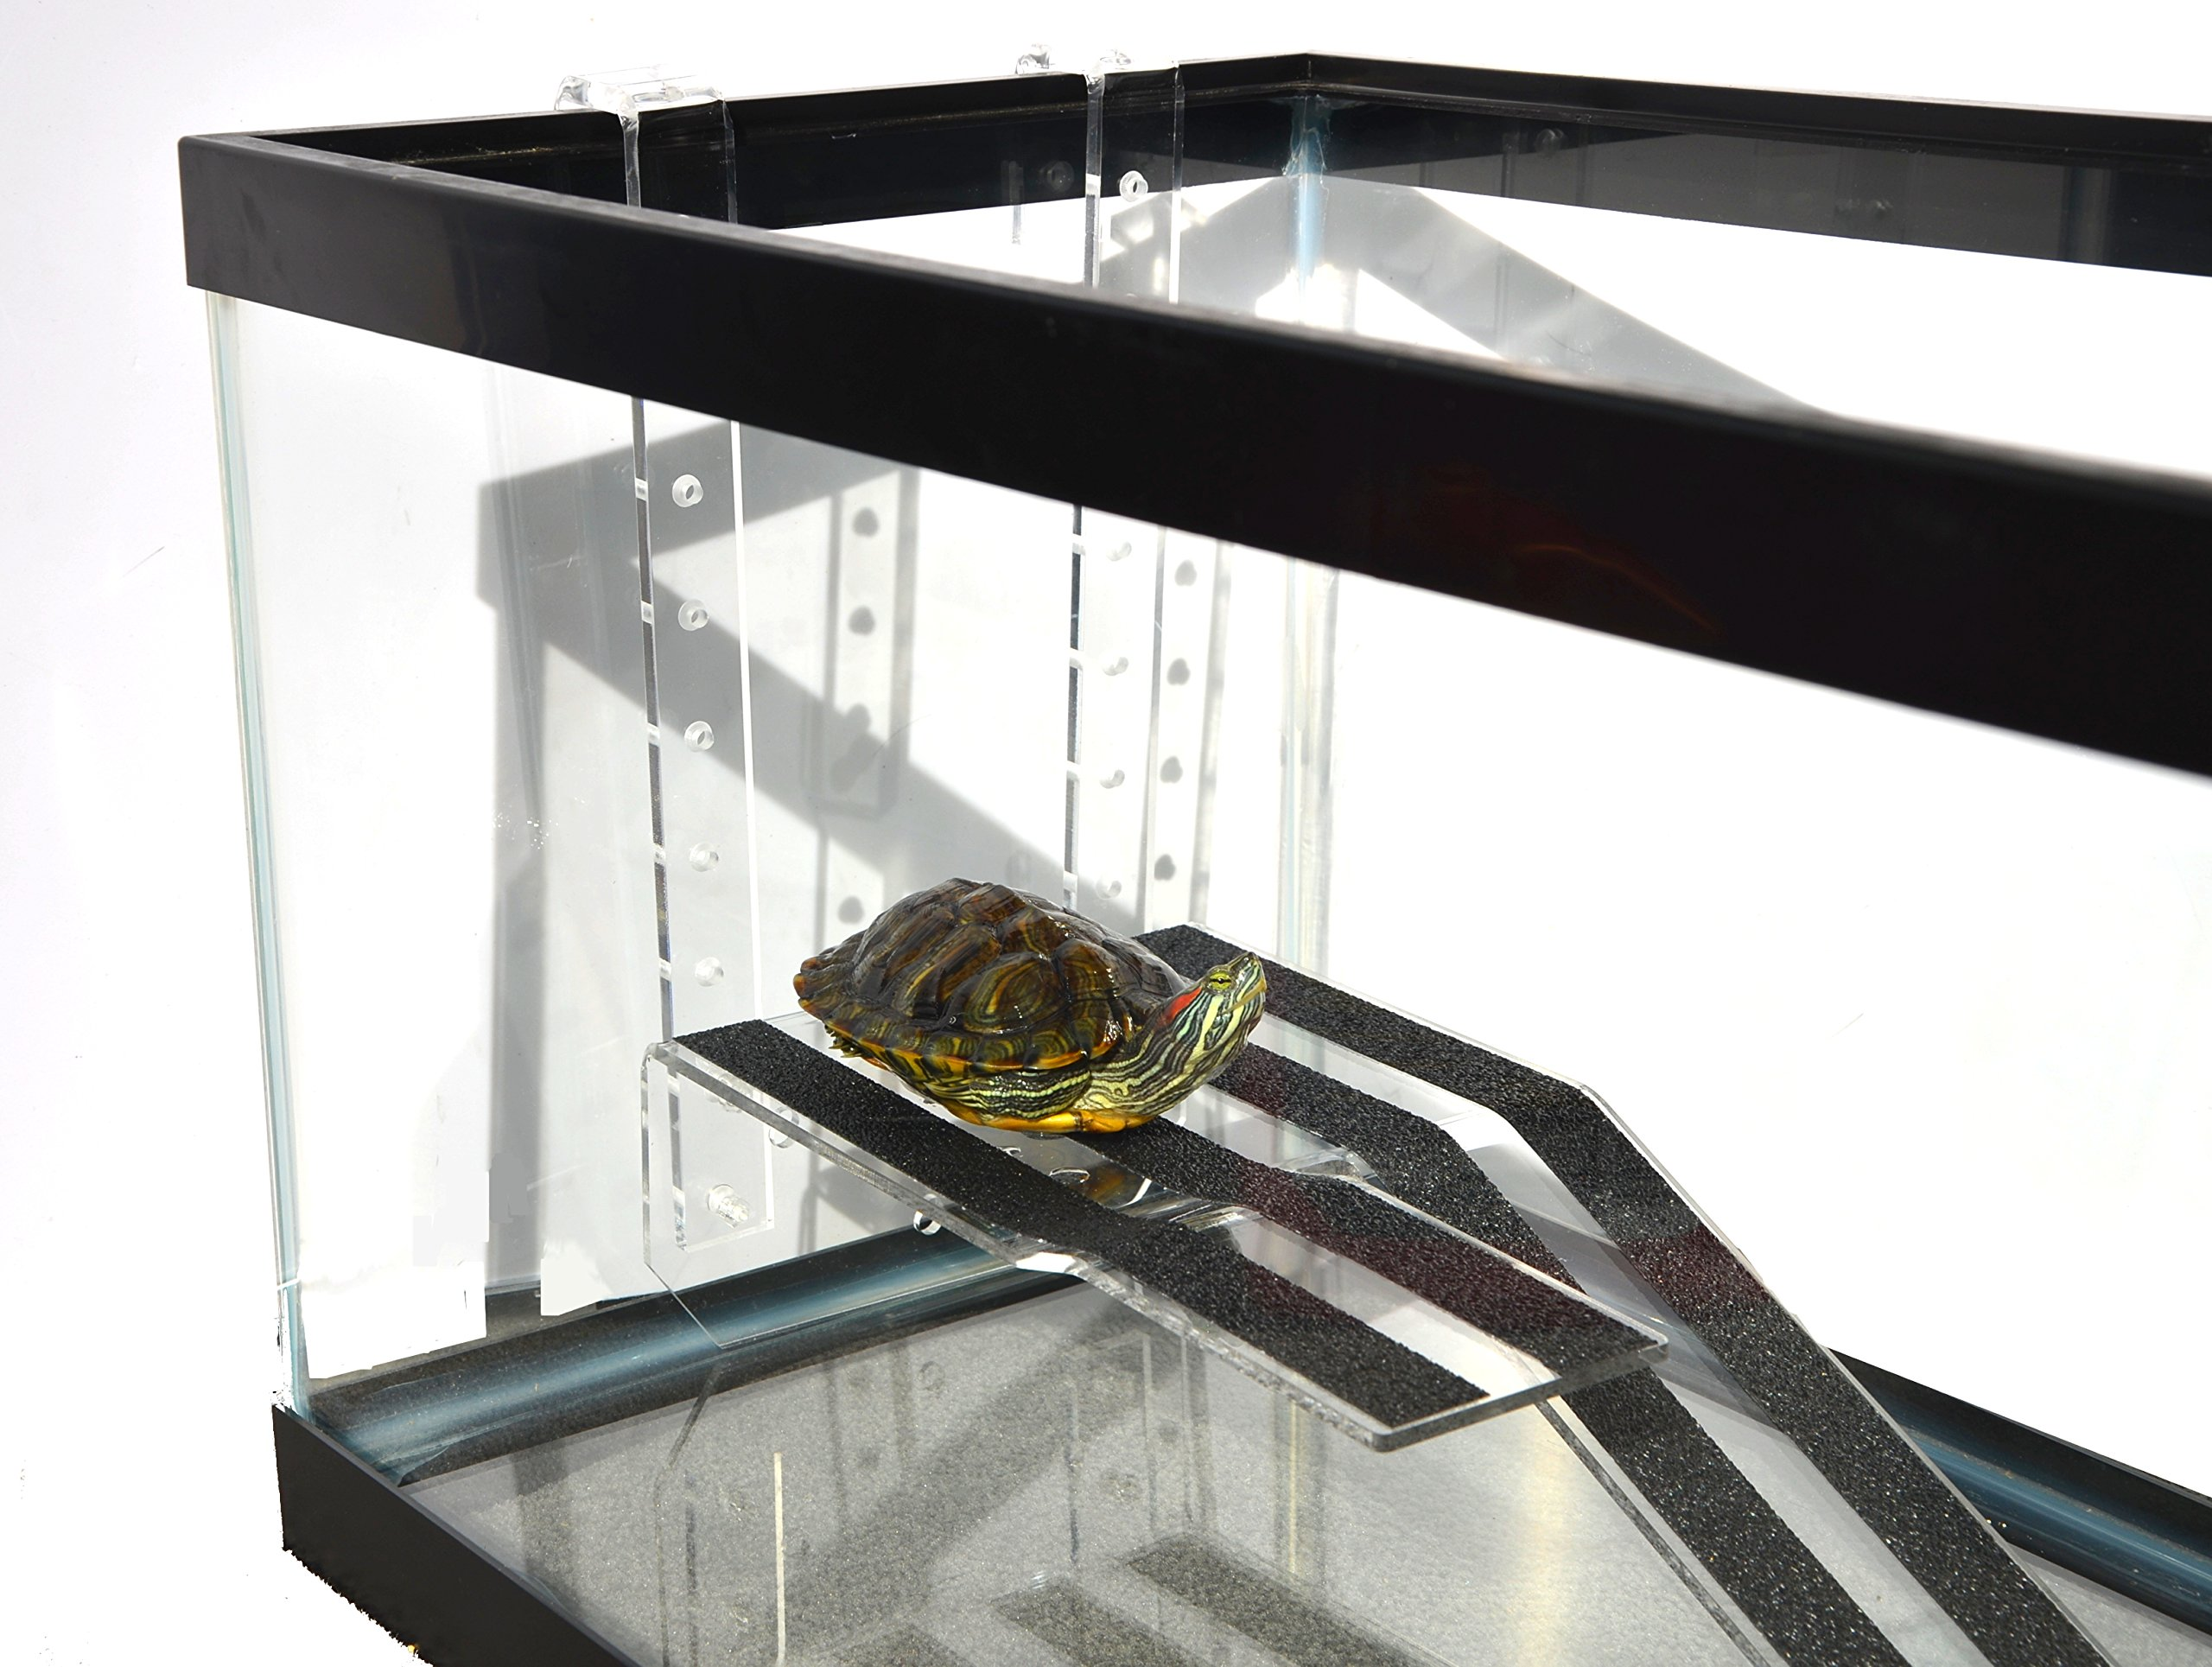 FREE SHIPPING IN THE USA OASIS TURTLE RAMP MEDIUM WITH SUCTION CUPS